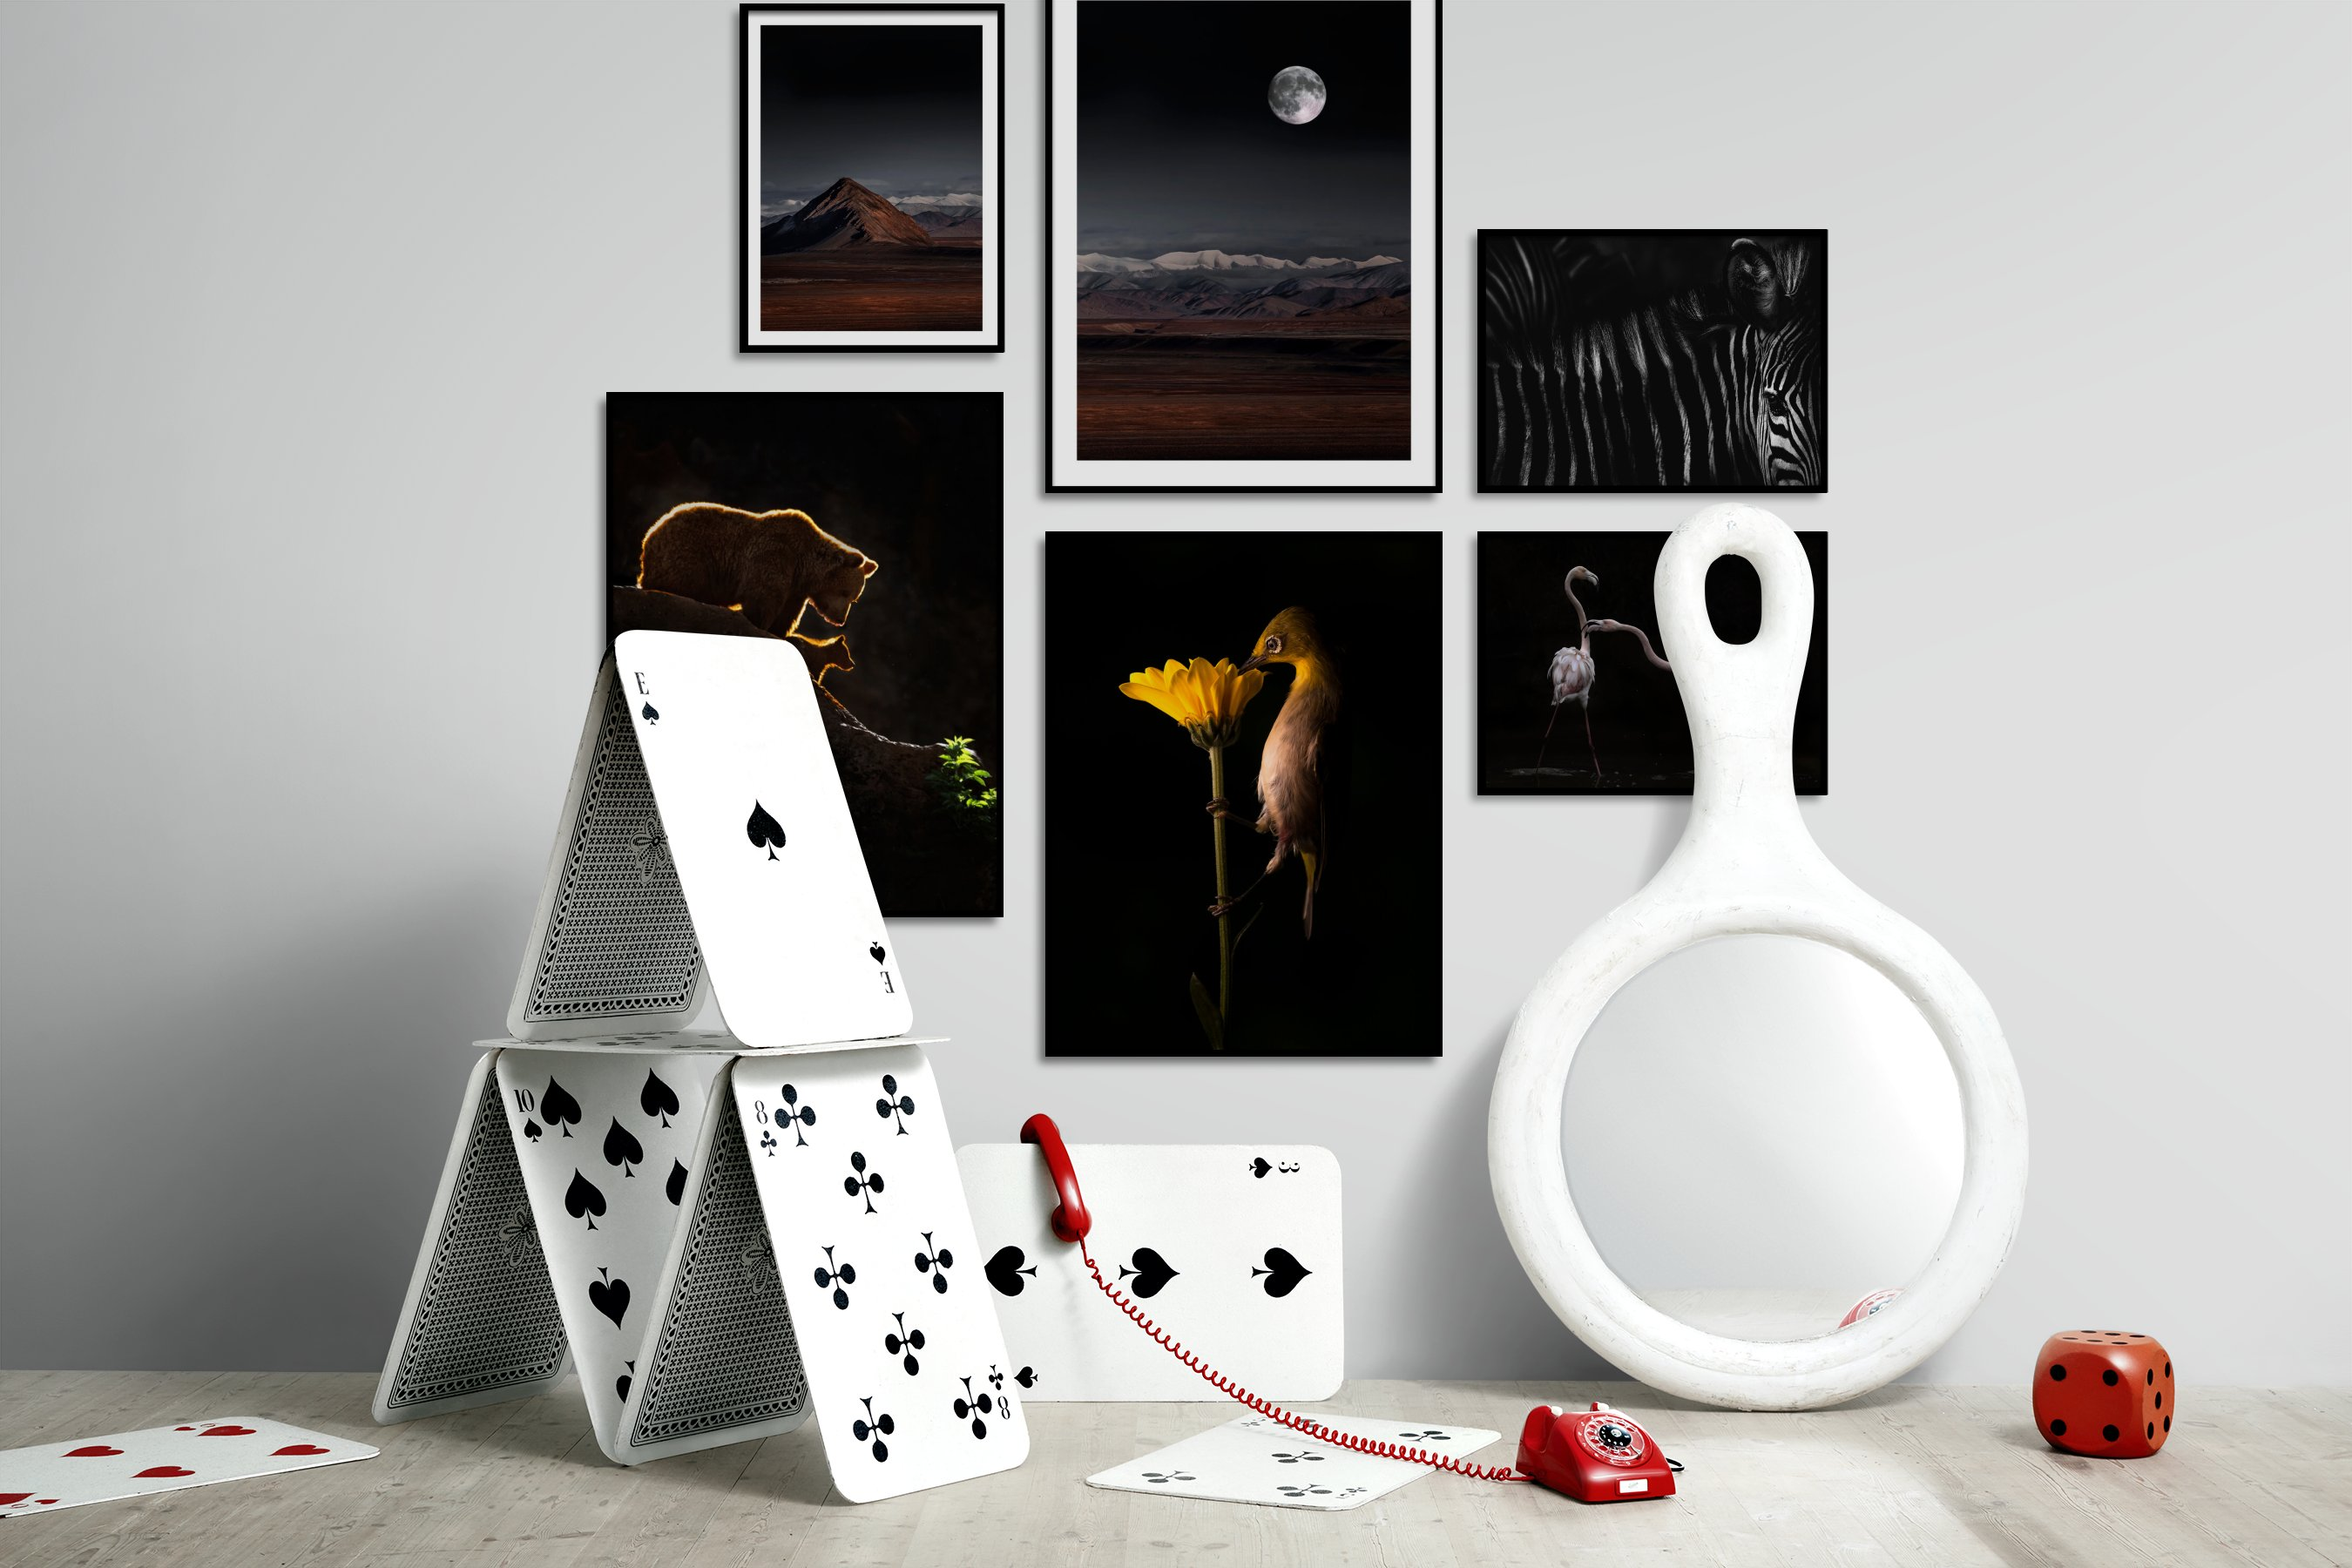 Gallery wall idea with six framed pictures arranged on a wall depicting Nature, Dark Tones, For the Minimalist, Animals, Black & White, and For the Moderate